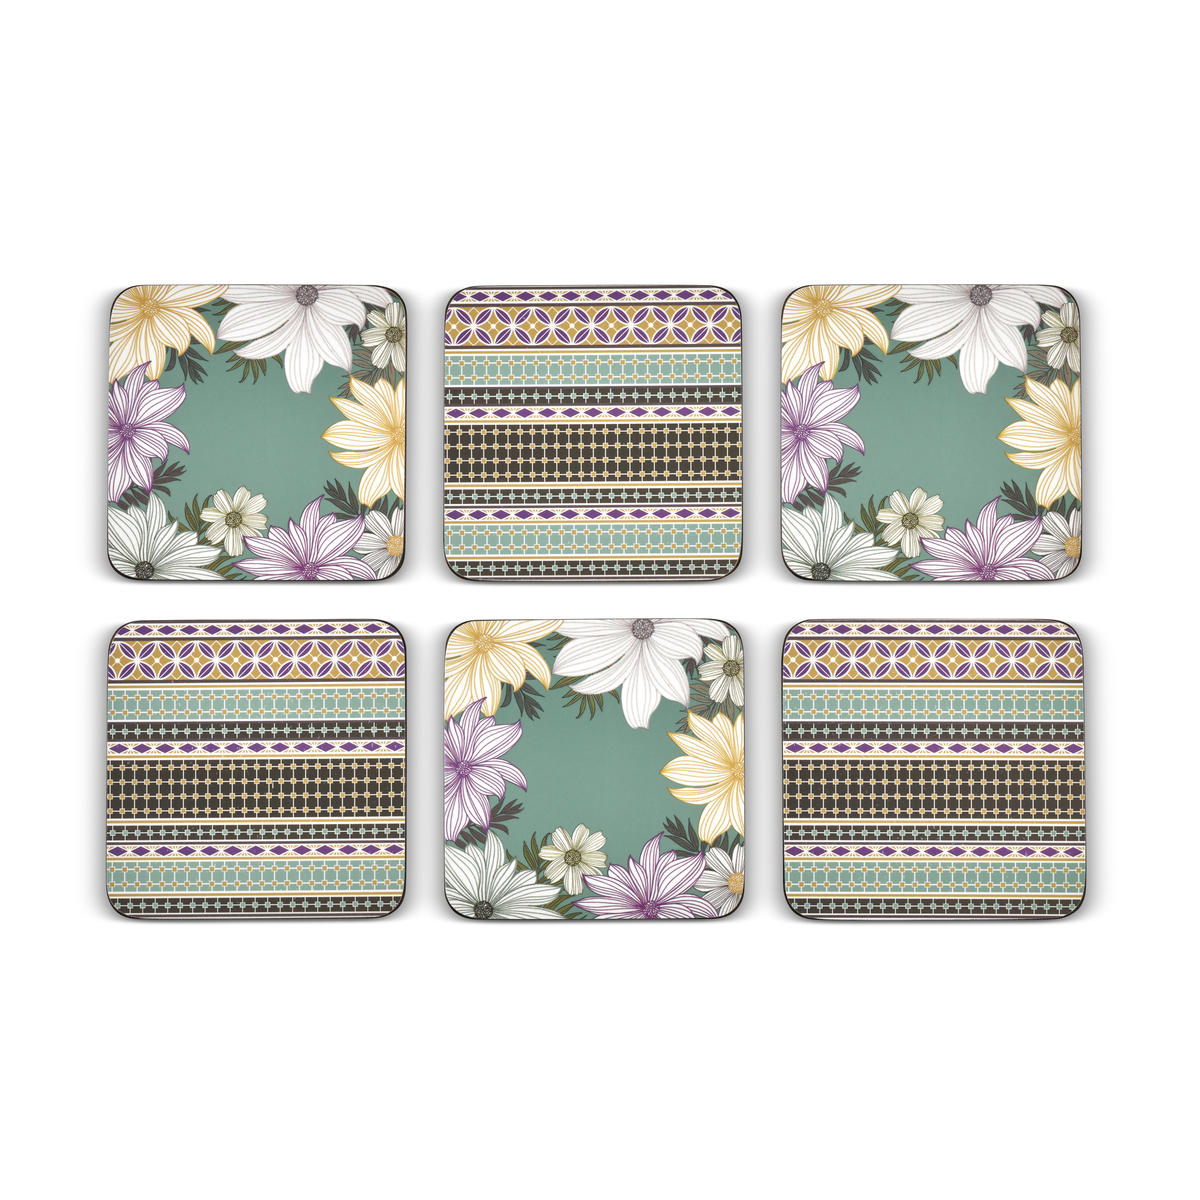 Pimpernel Atrium Coasters Set of 6 image number 2